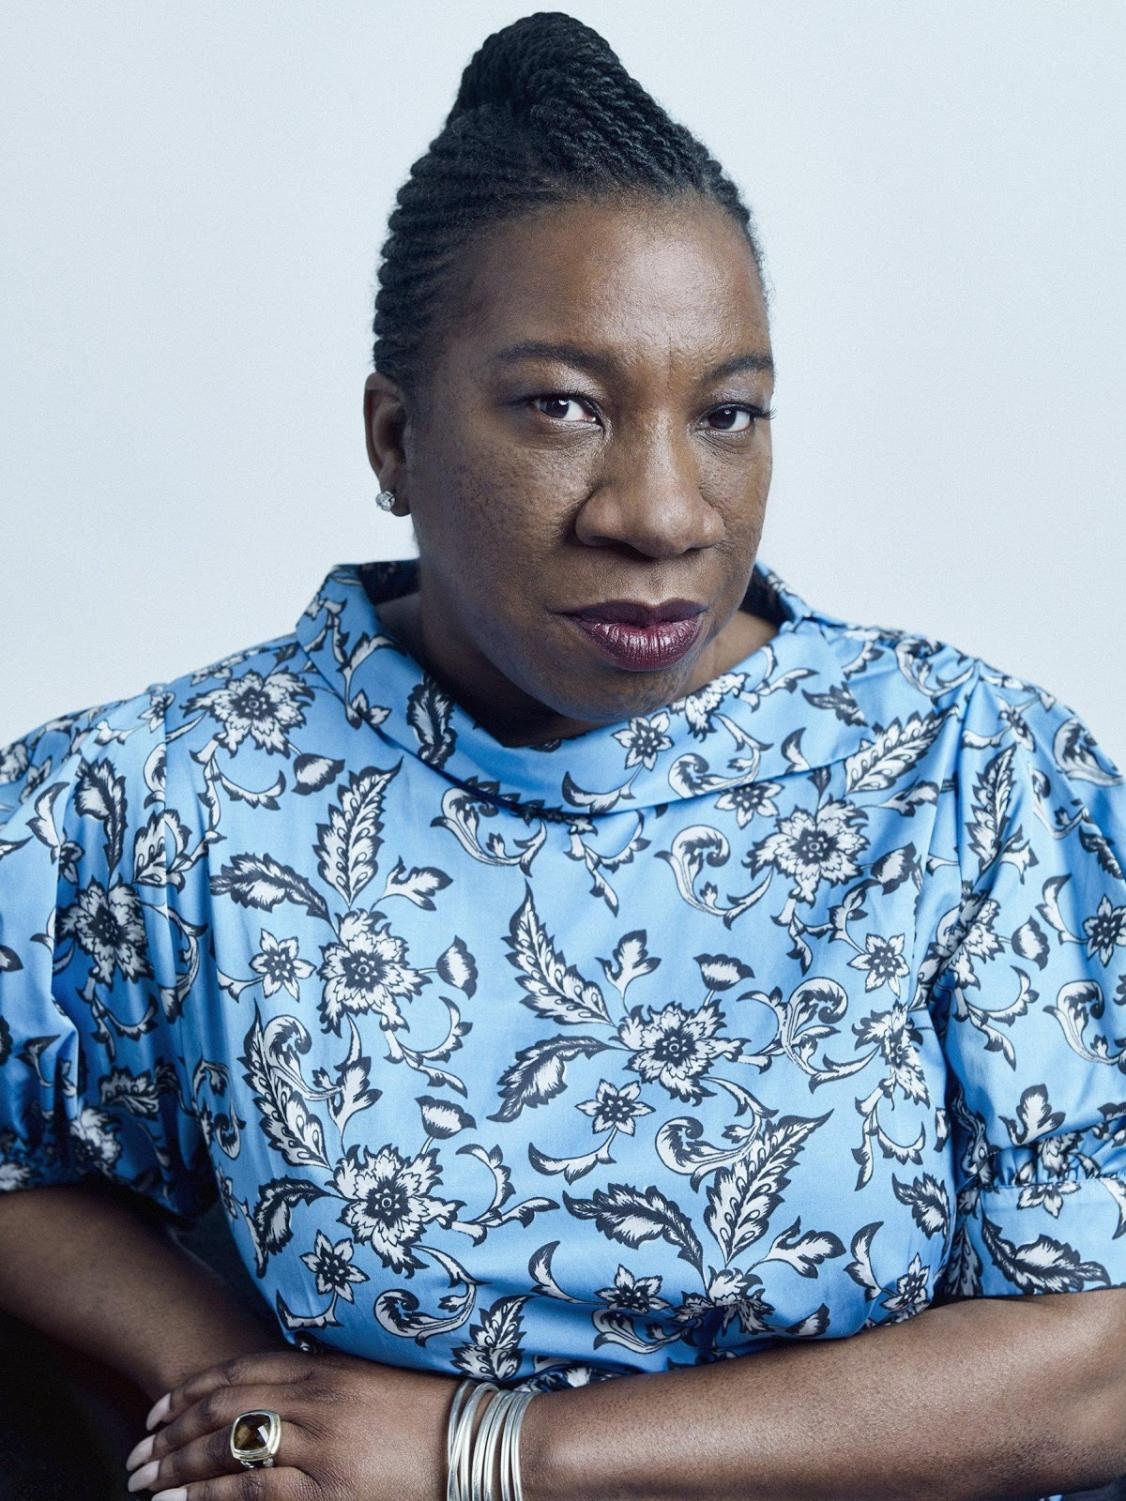 Tarana Burke is credited with starting the